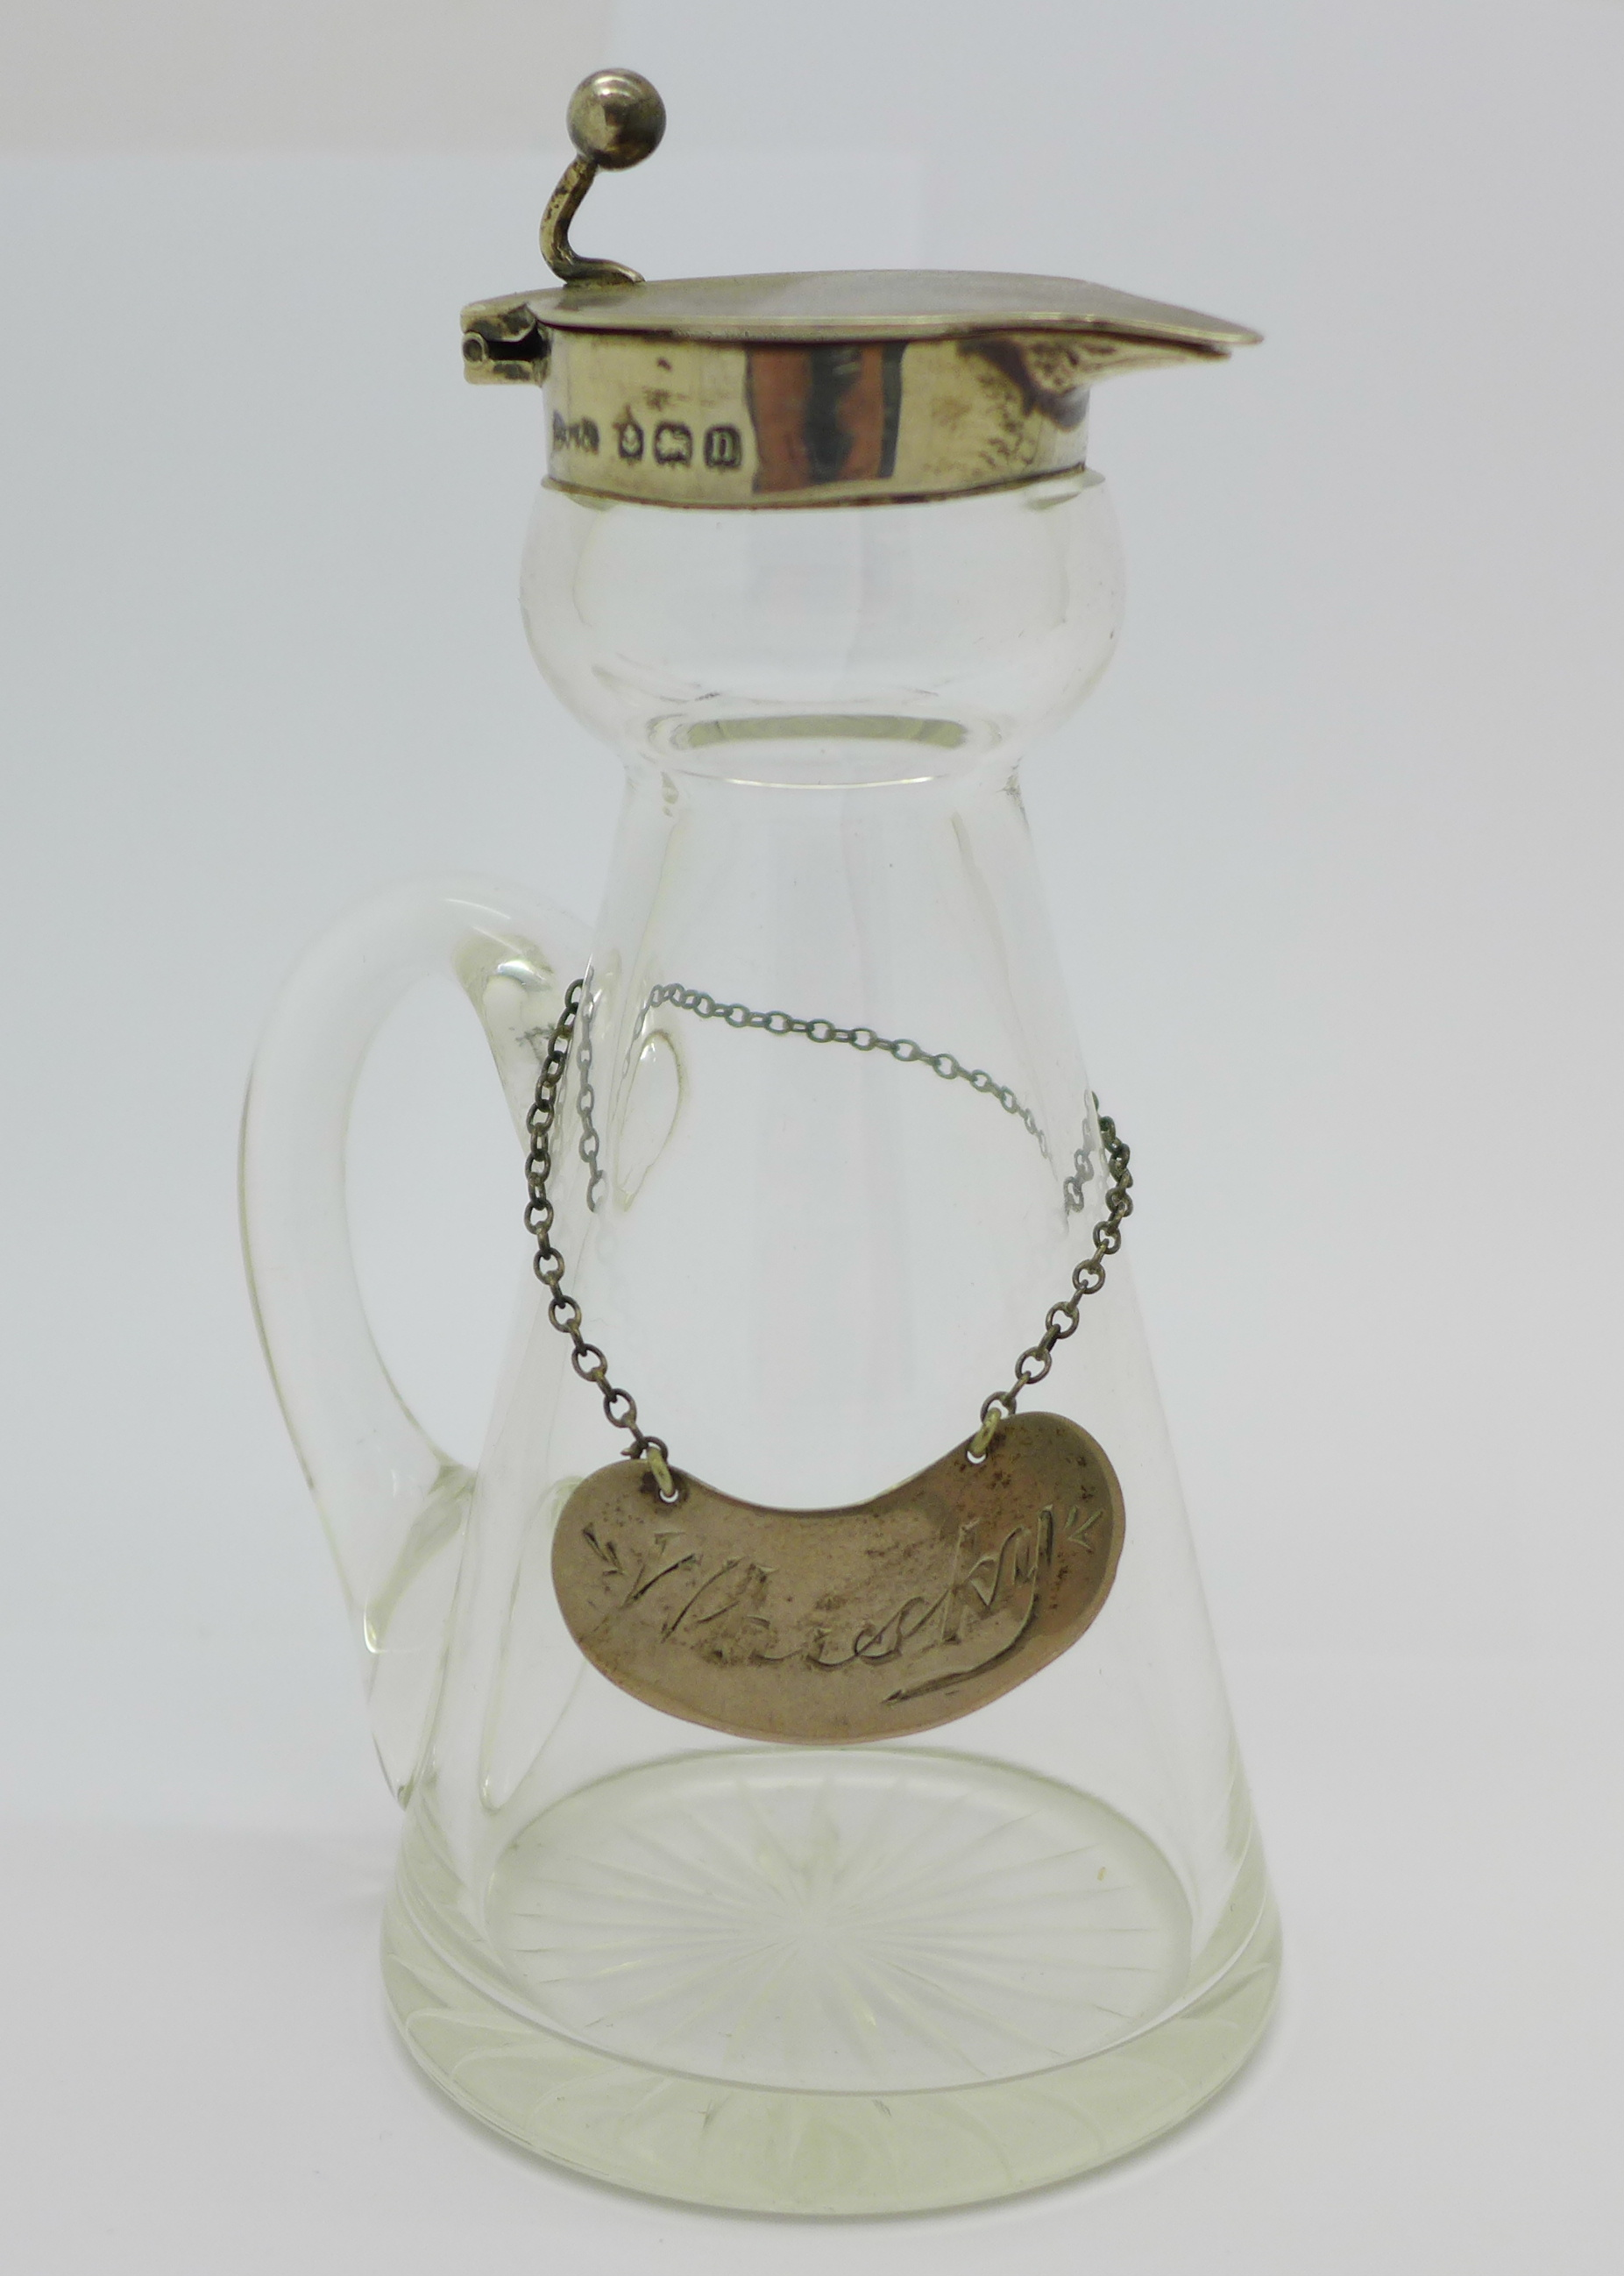 A silver mounted glass whisky noggin with a silver label